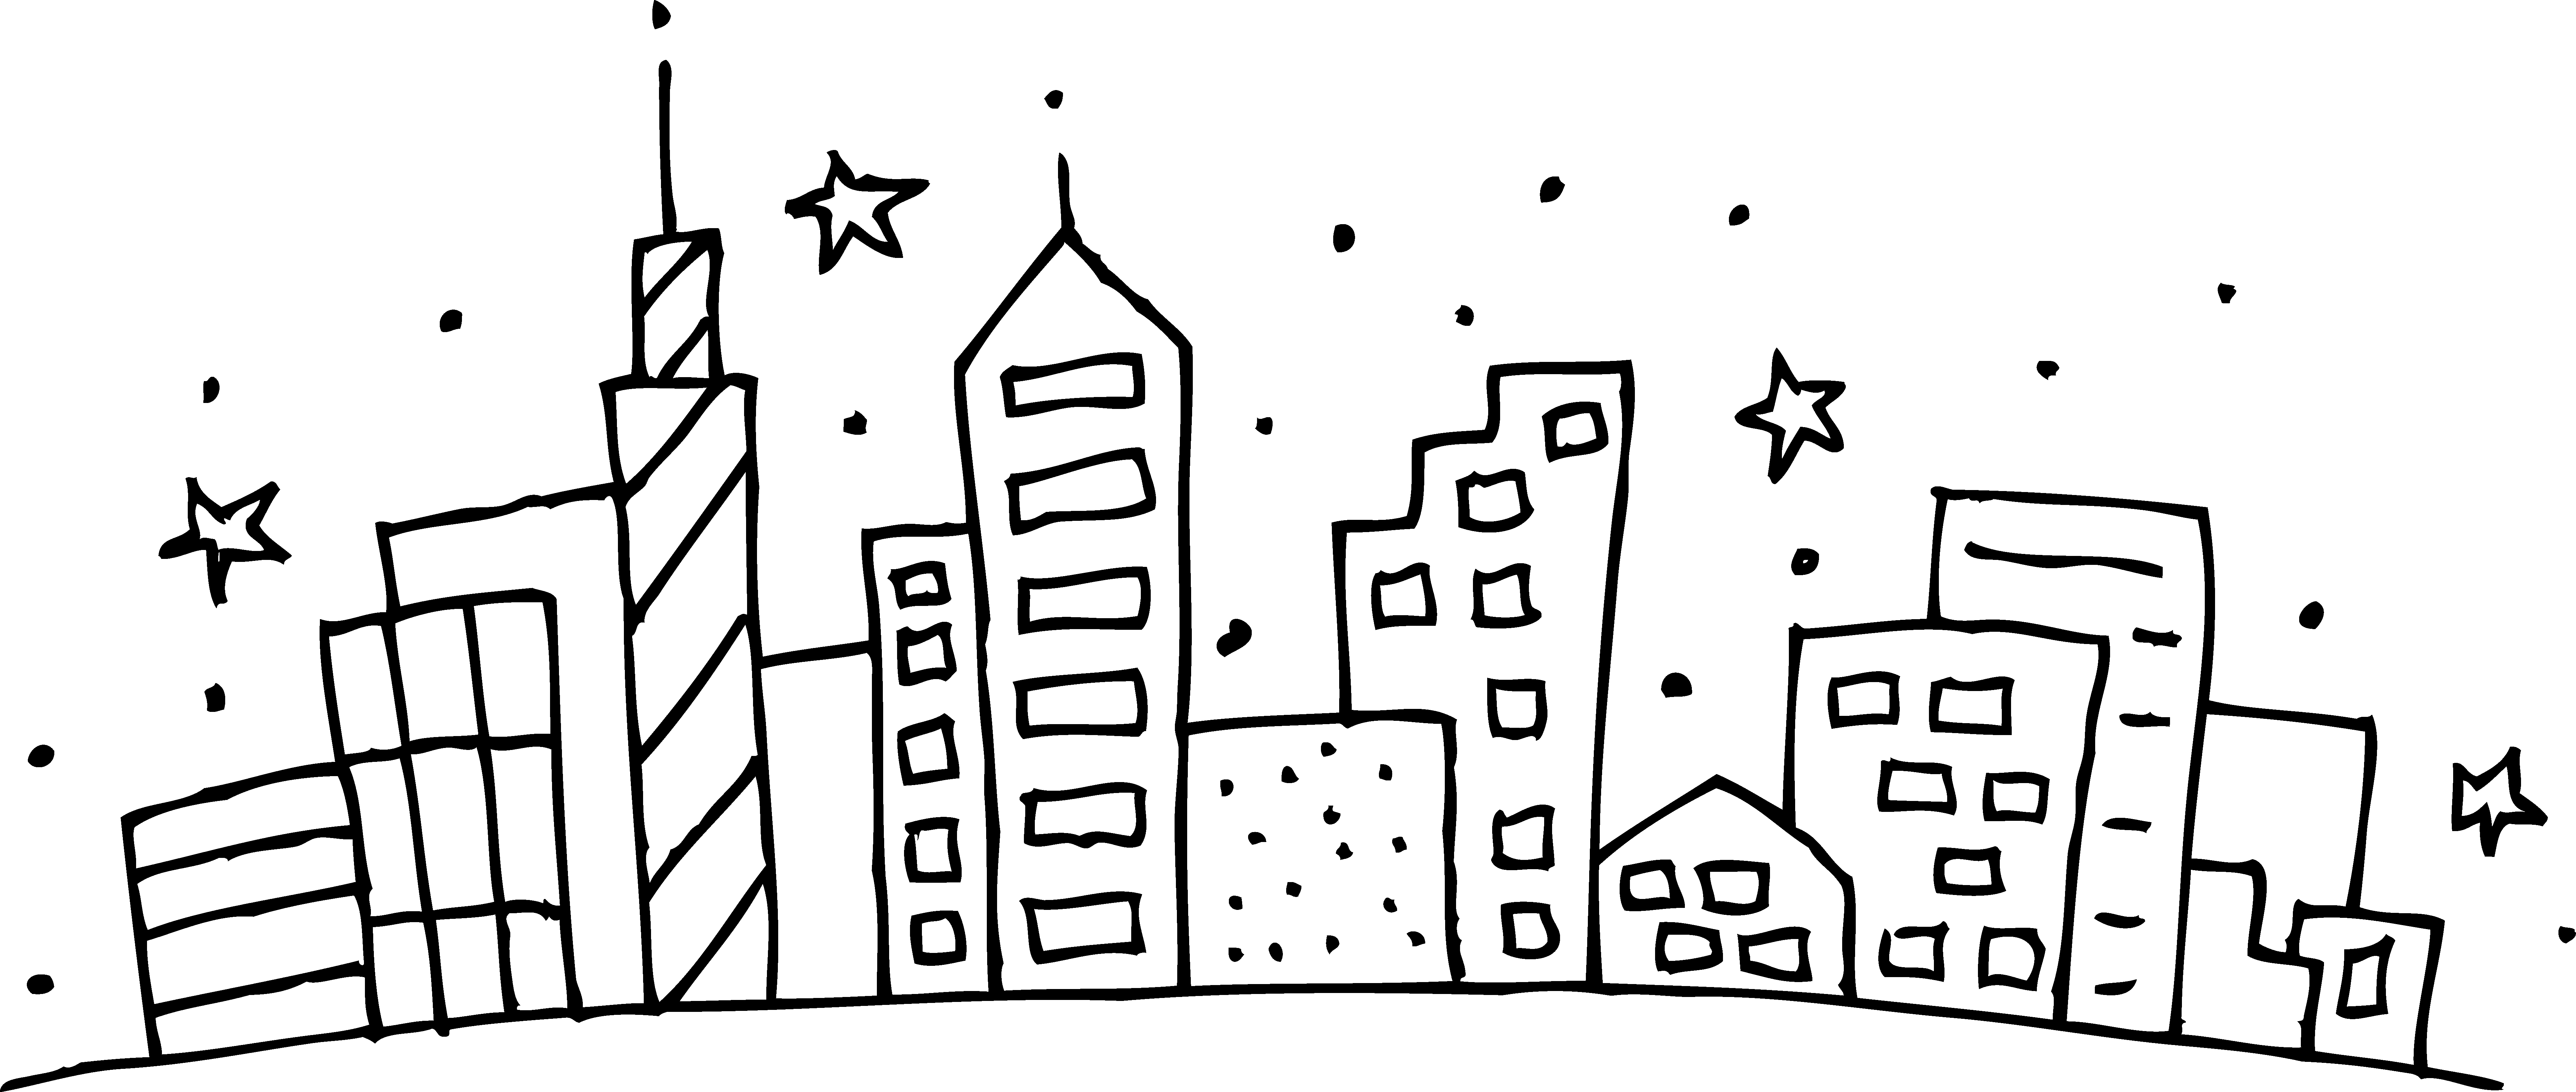 City buildings outline clipart free library Cityscape Coloring Page - Free Clip Art free library